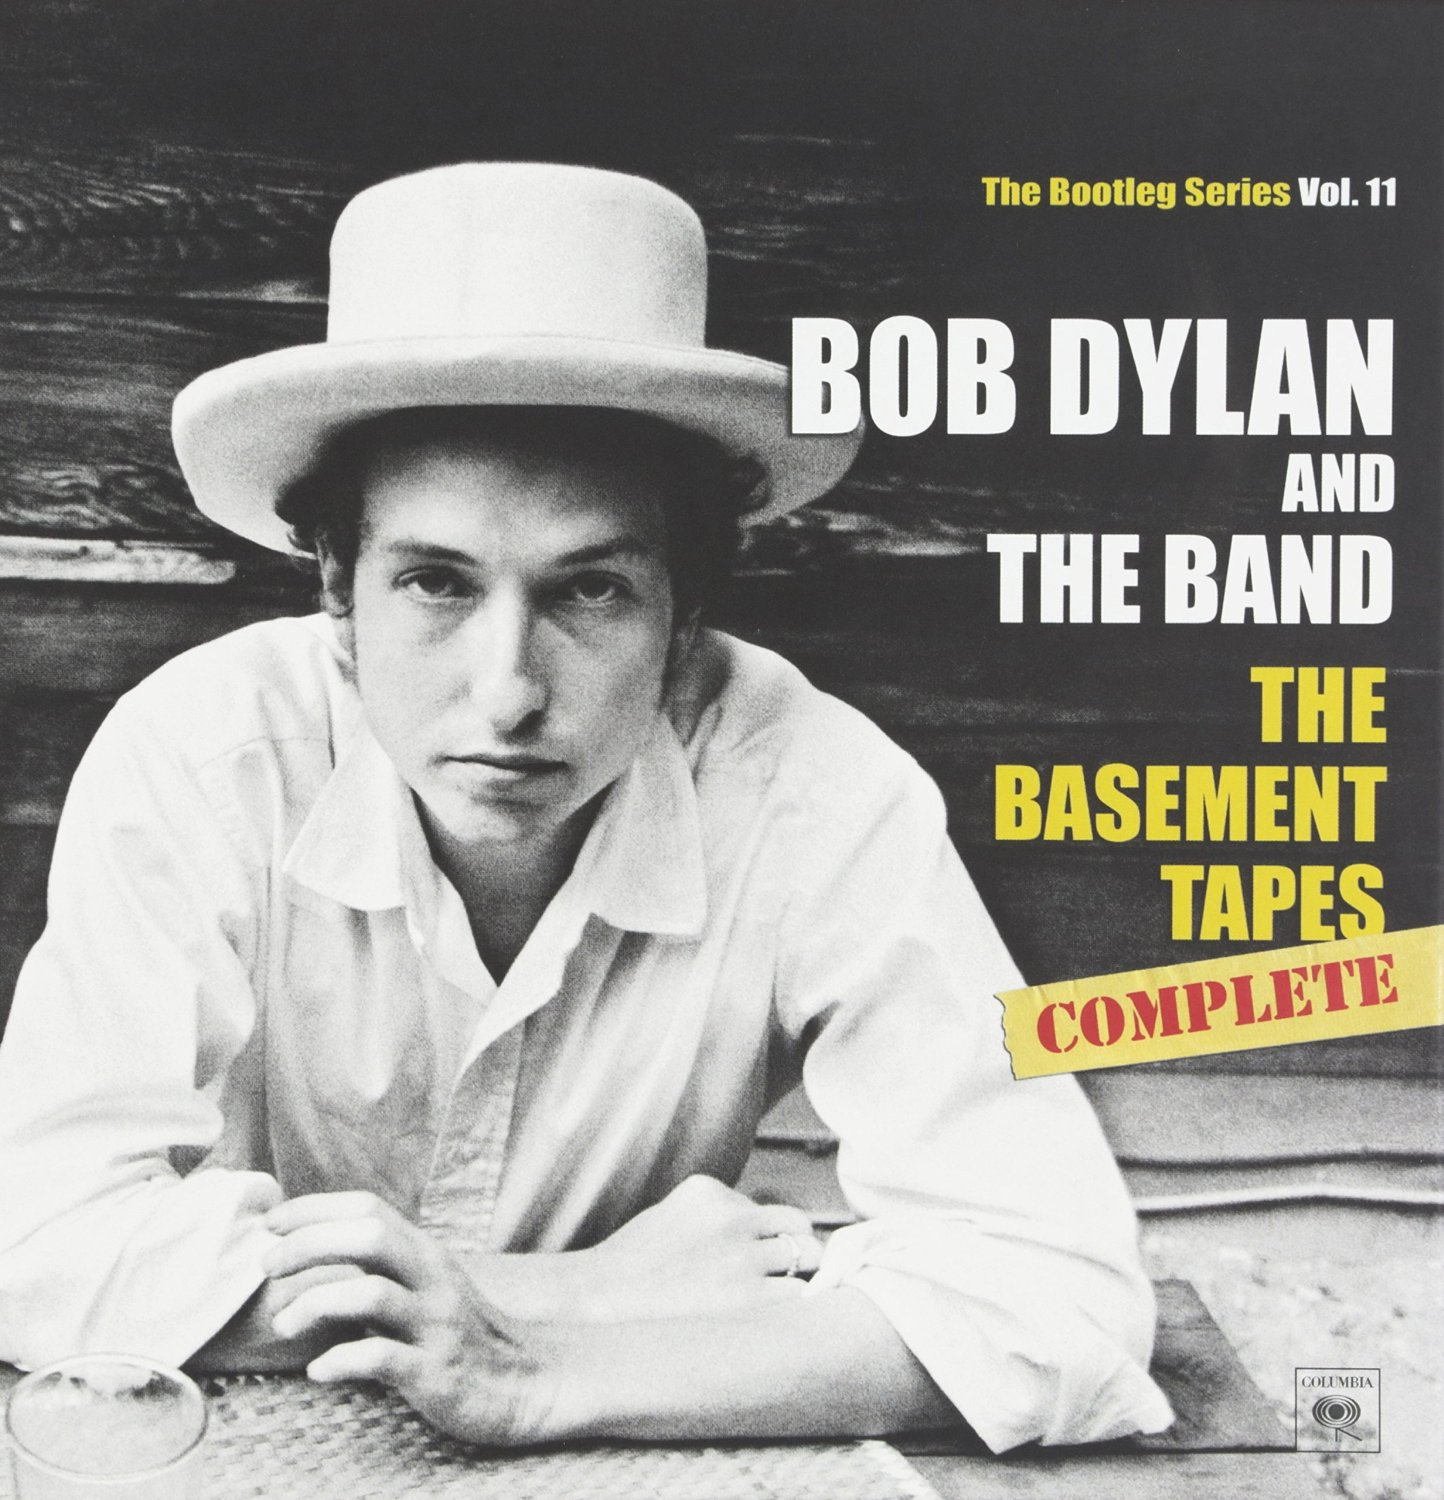 The Basement Tapes Complete: The Bootleg Series Vol. 11(Deluxe Edition)